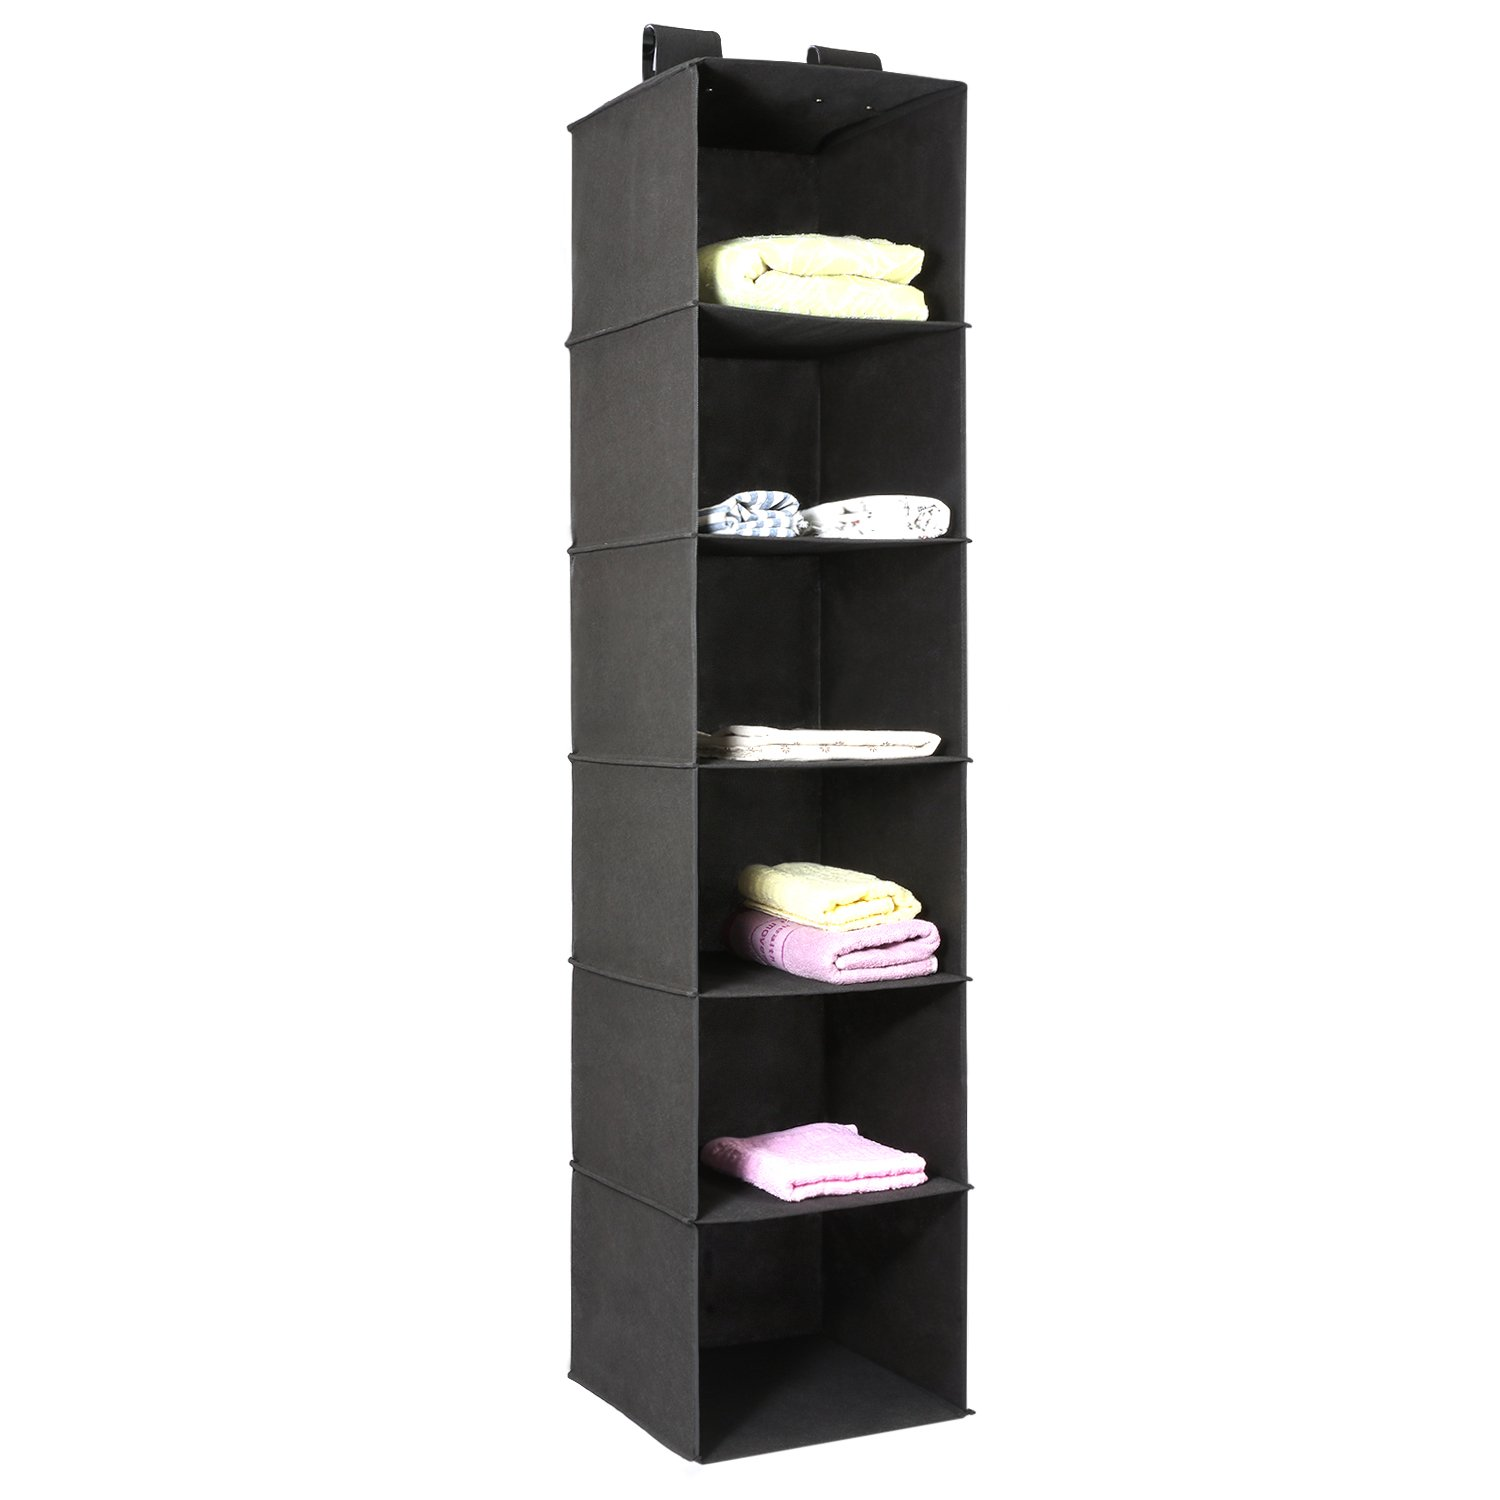 Magicfly Hanging Closet Organizer, 6-Shelf Hanging Clothes Storage Box Collapsible Accessory Shelves Hanging Closet Cubby for Sweater & Handbag Organizer, Easy Mount, Black